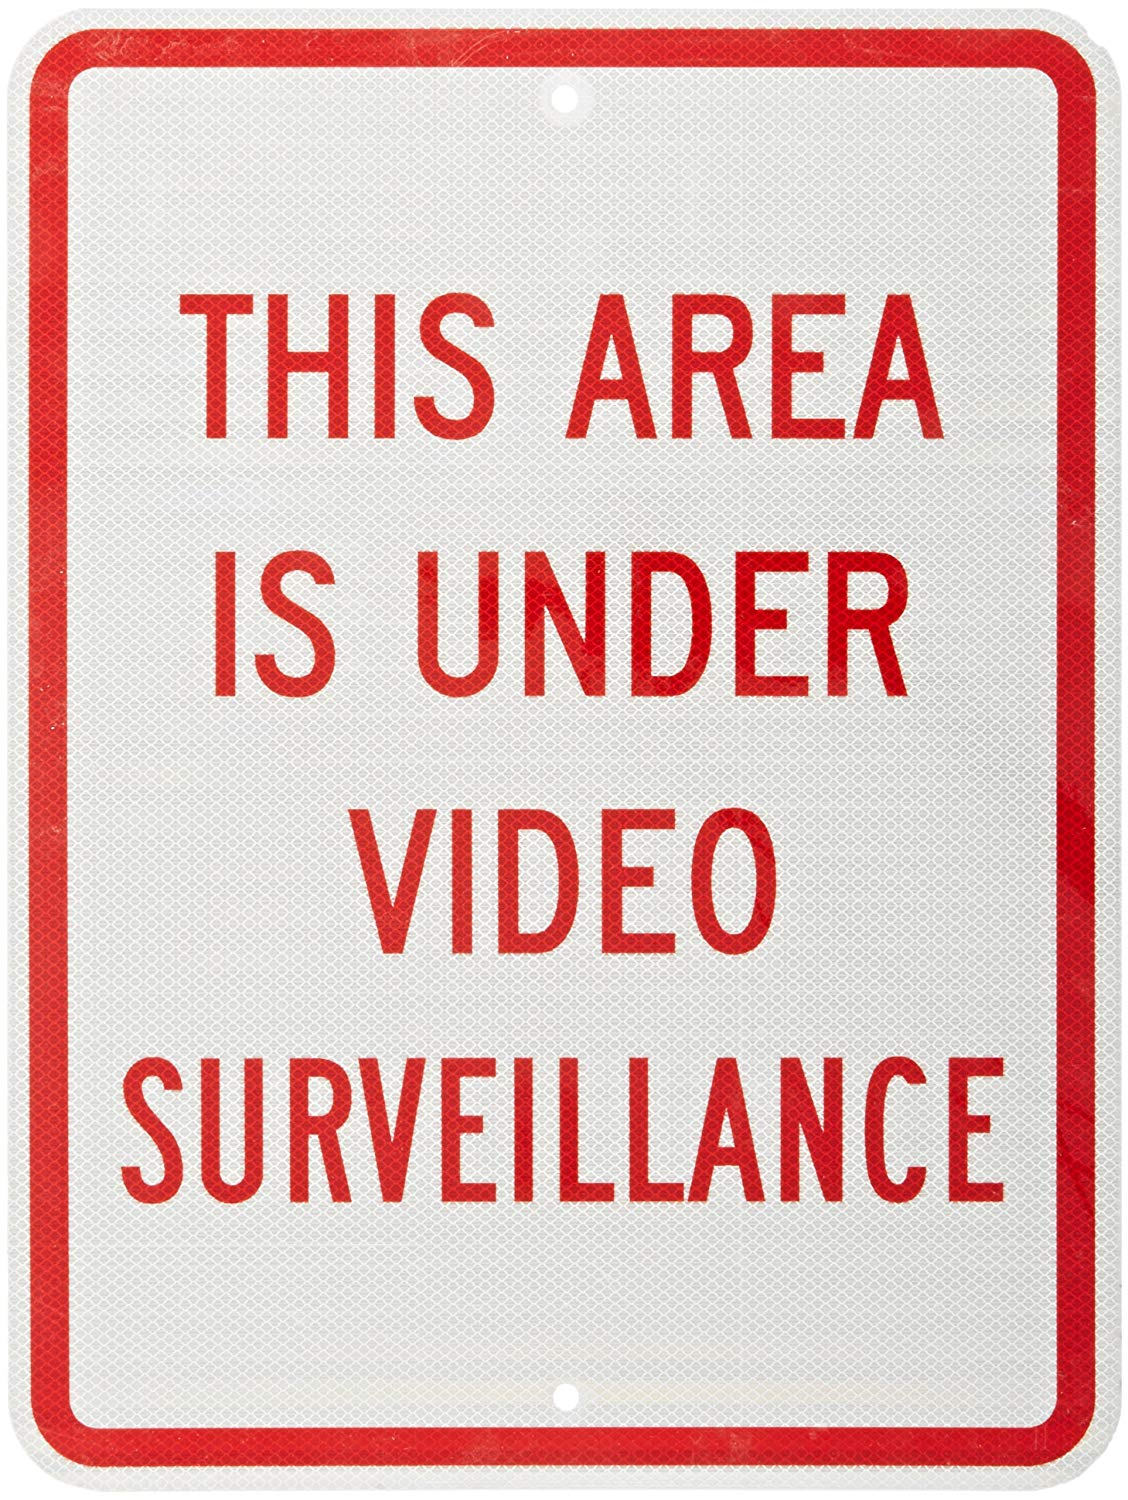 "SmartSign 3M High Intensity Grade Reflective Sign, Legend ""This Area is Under Video Surveillance"", 24"" high x 18"" wide, Red on White"